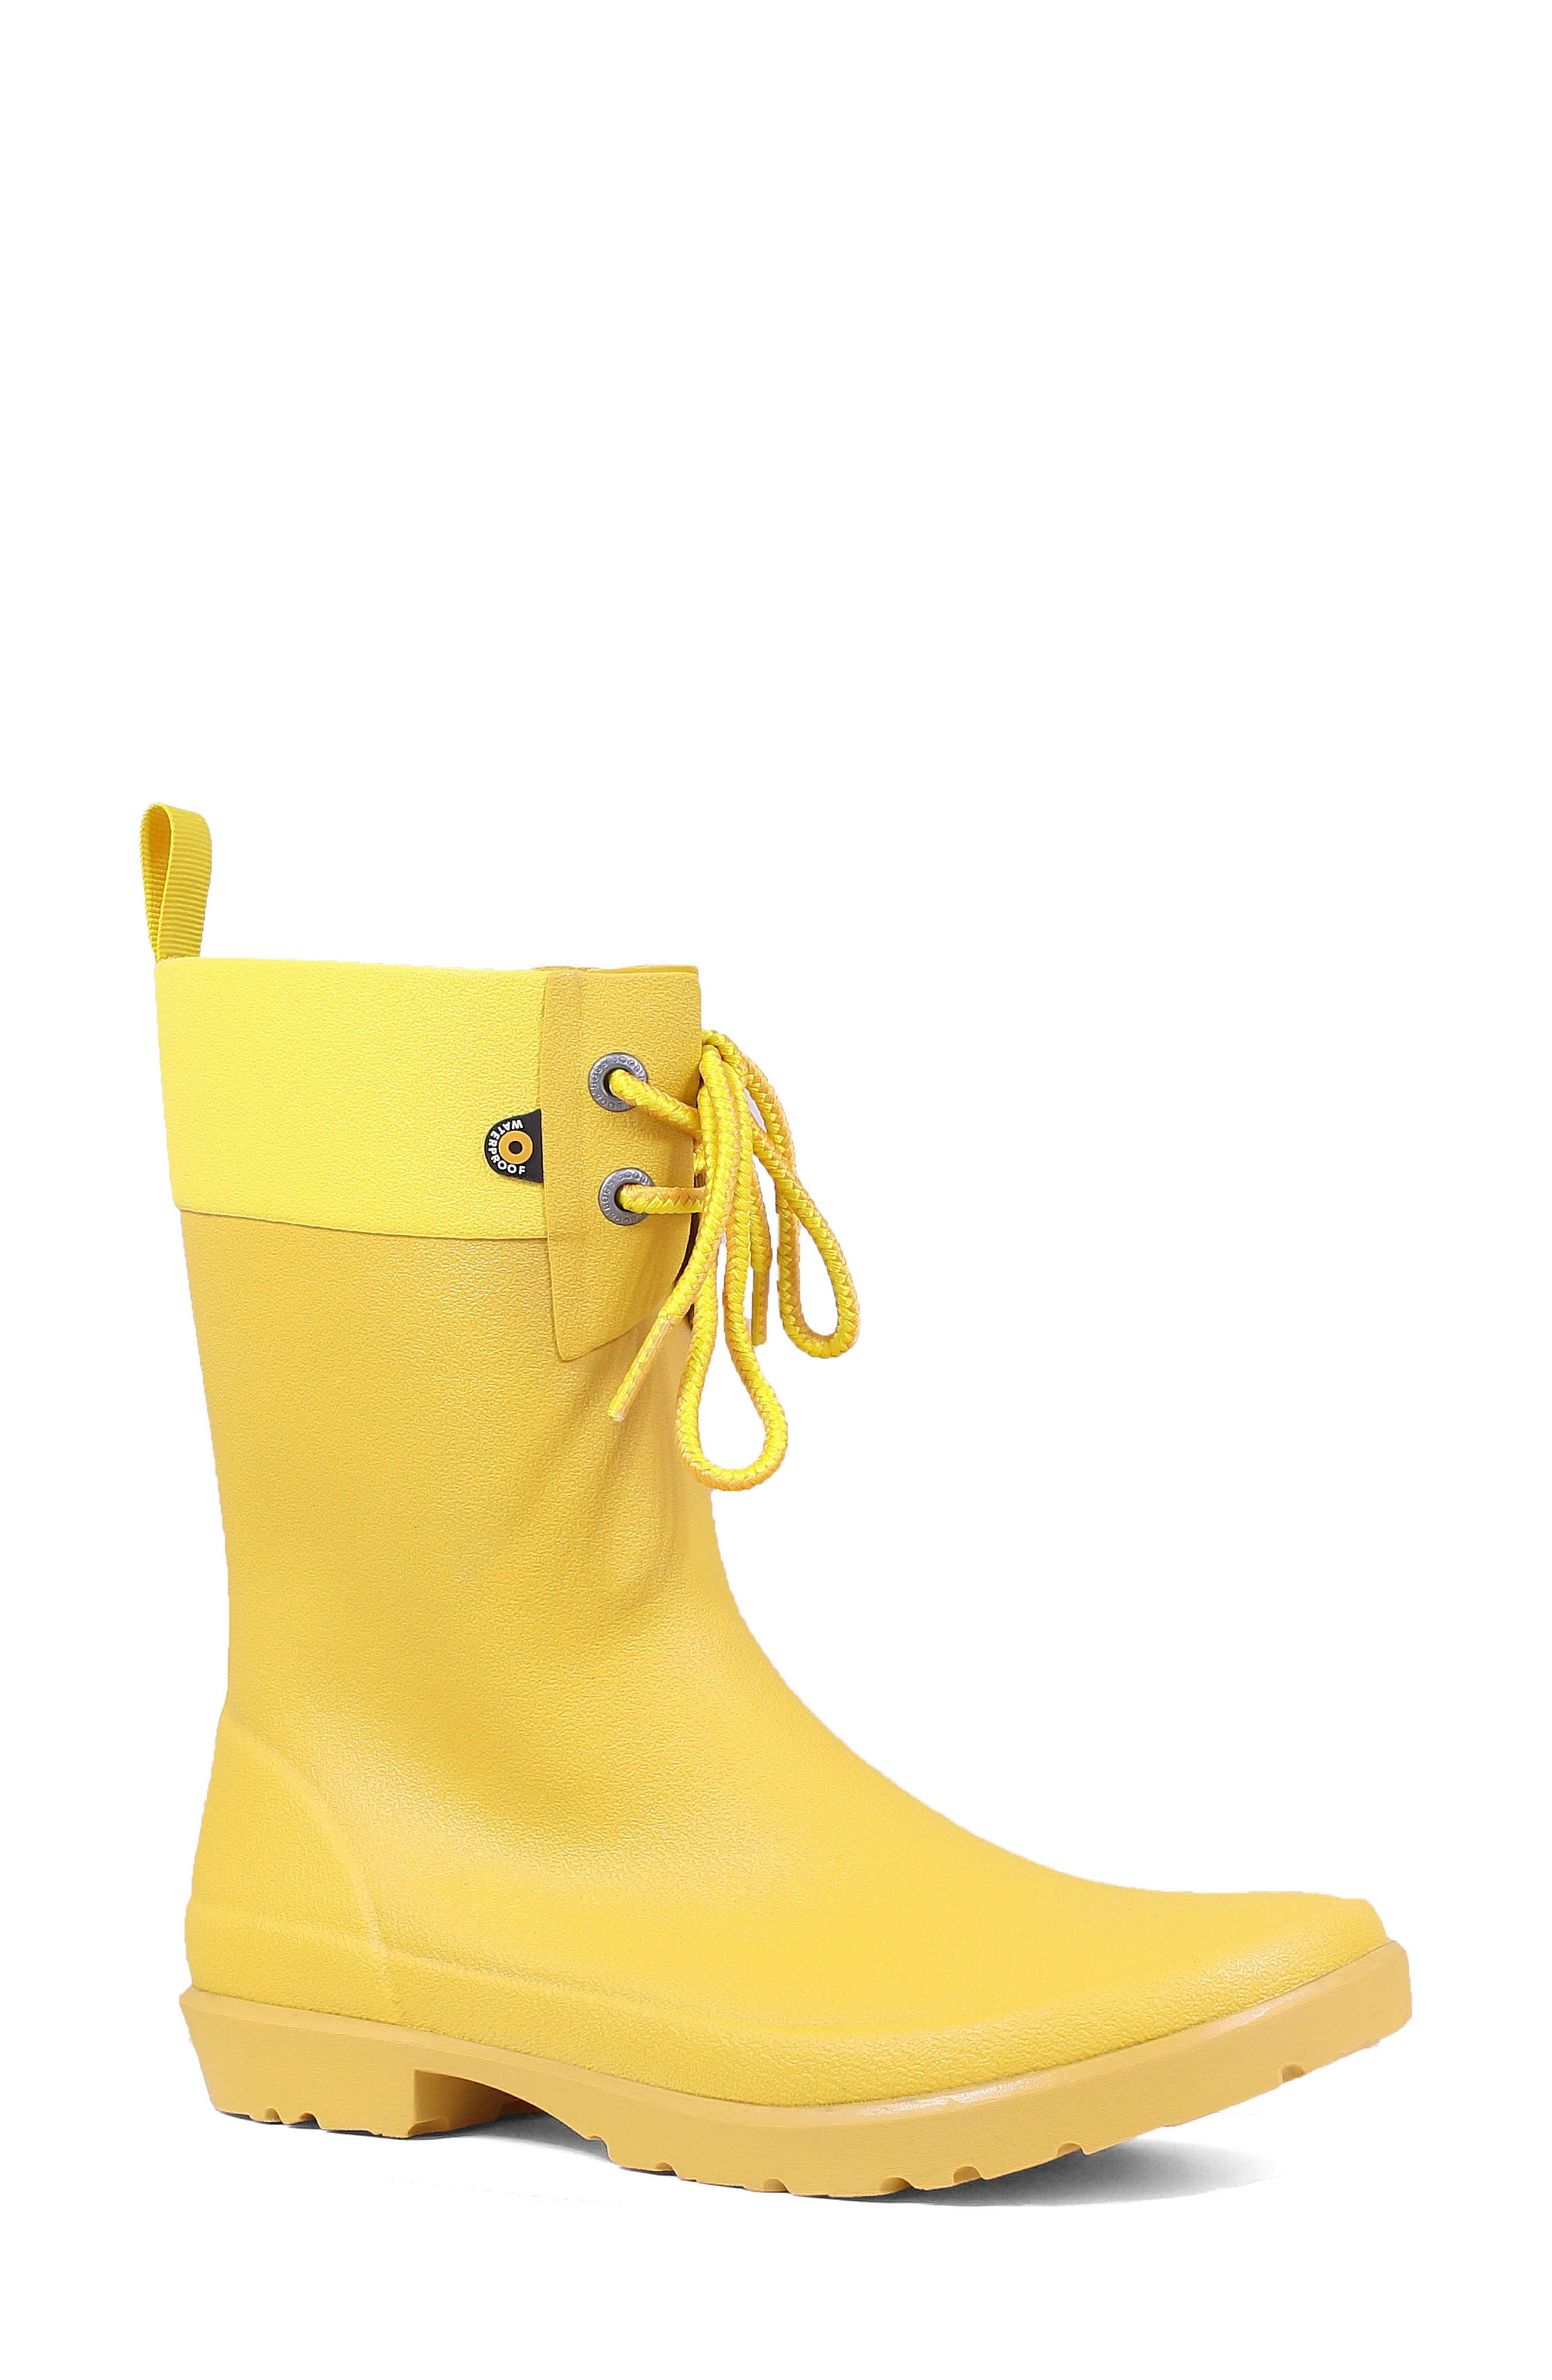 Bogs Floral Lace-Up Waterproof Rain Boot, Yellow